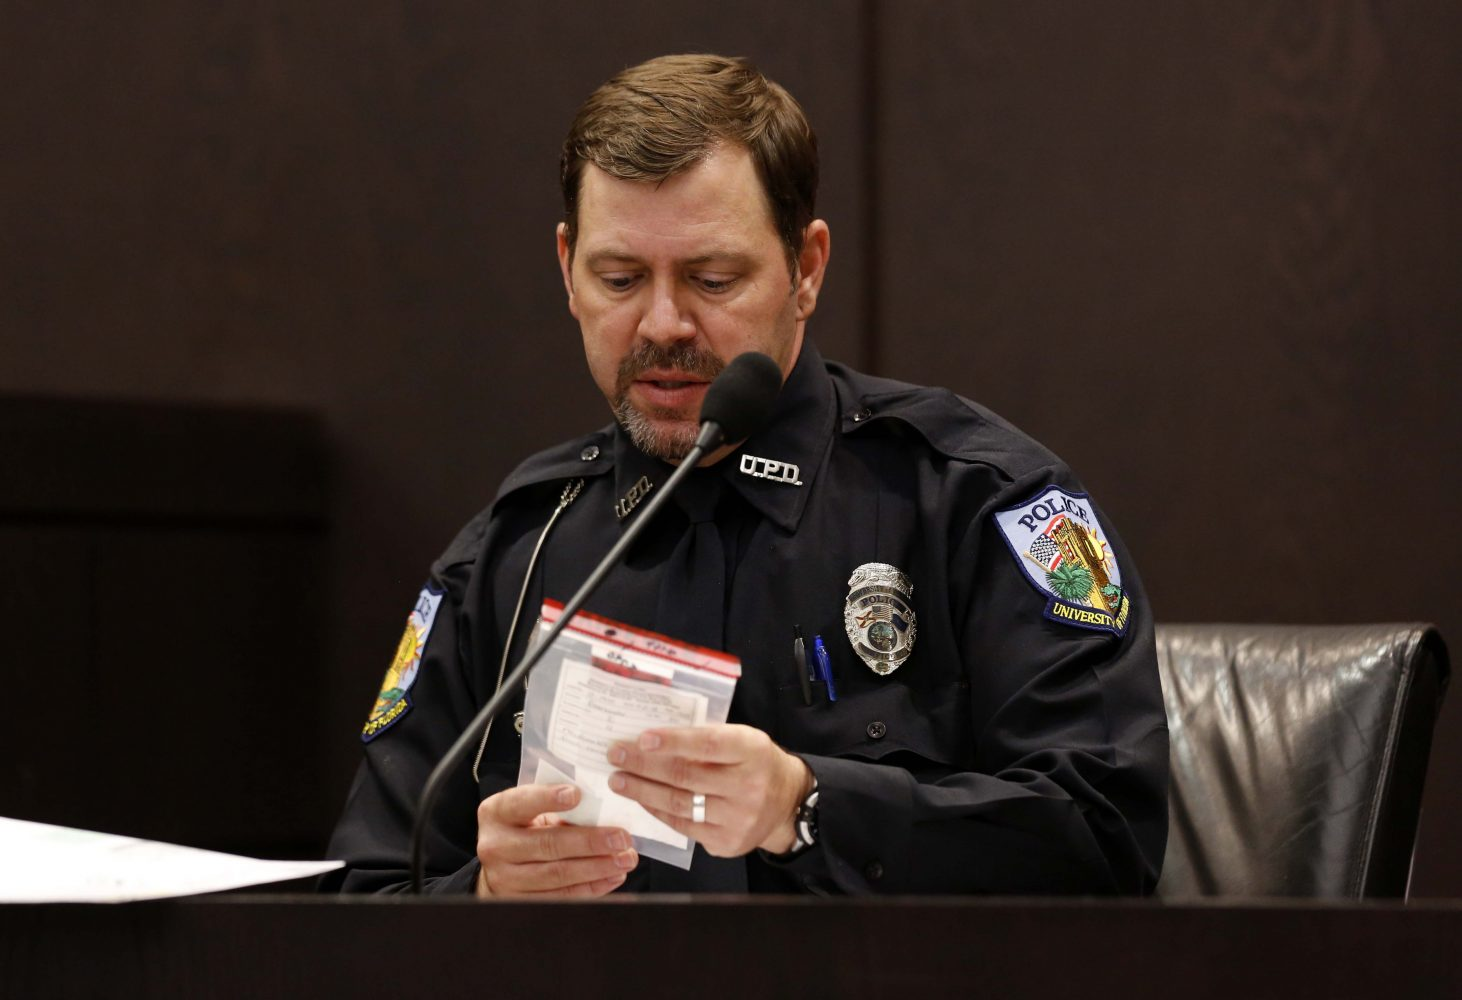 University Police Officer Tim Peck verifies a McDonald's receipt found in Pedro Bravo's Chevy Blazer for prosecutor Brian Kramer during Bravo's murder trial in courtroom 1B of the Alachua County Criminal Justice Center Friday, August 8, 2014.  Bravo is accused of killing University of Florida student Christian Aguilar.  (Doug Finger/The Gainesville Sun/Pool)